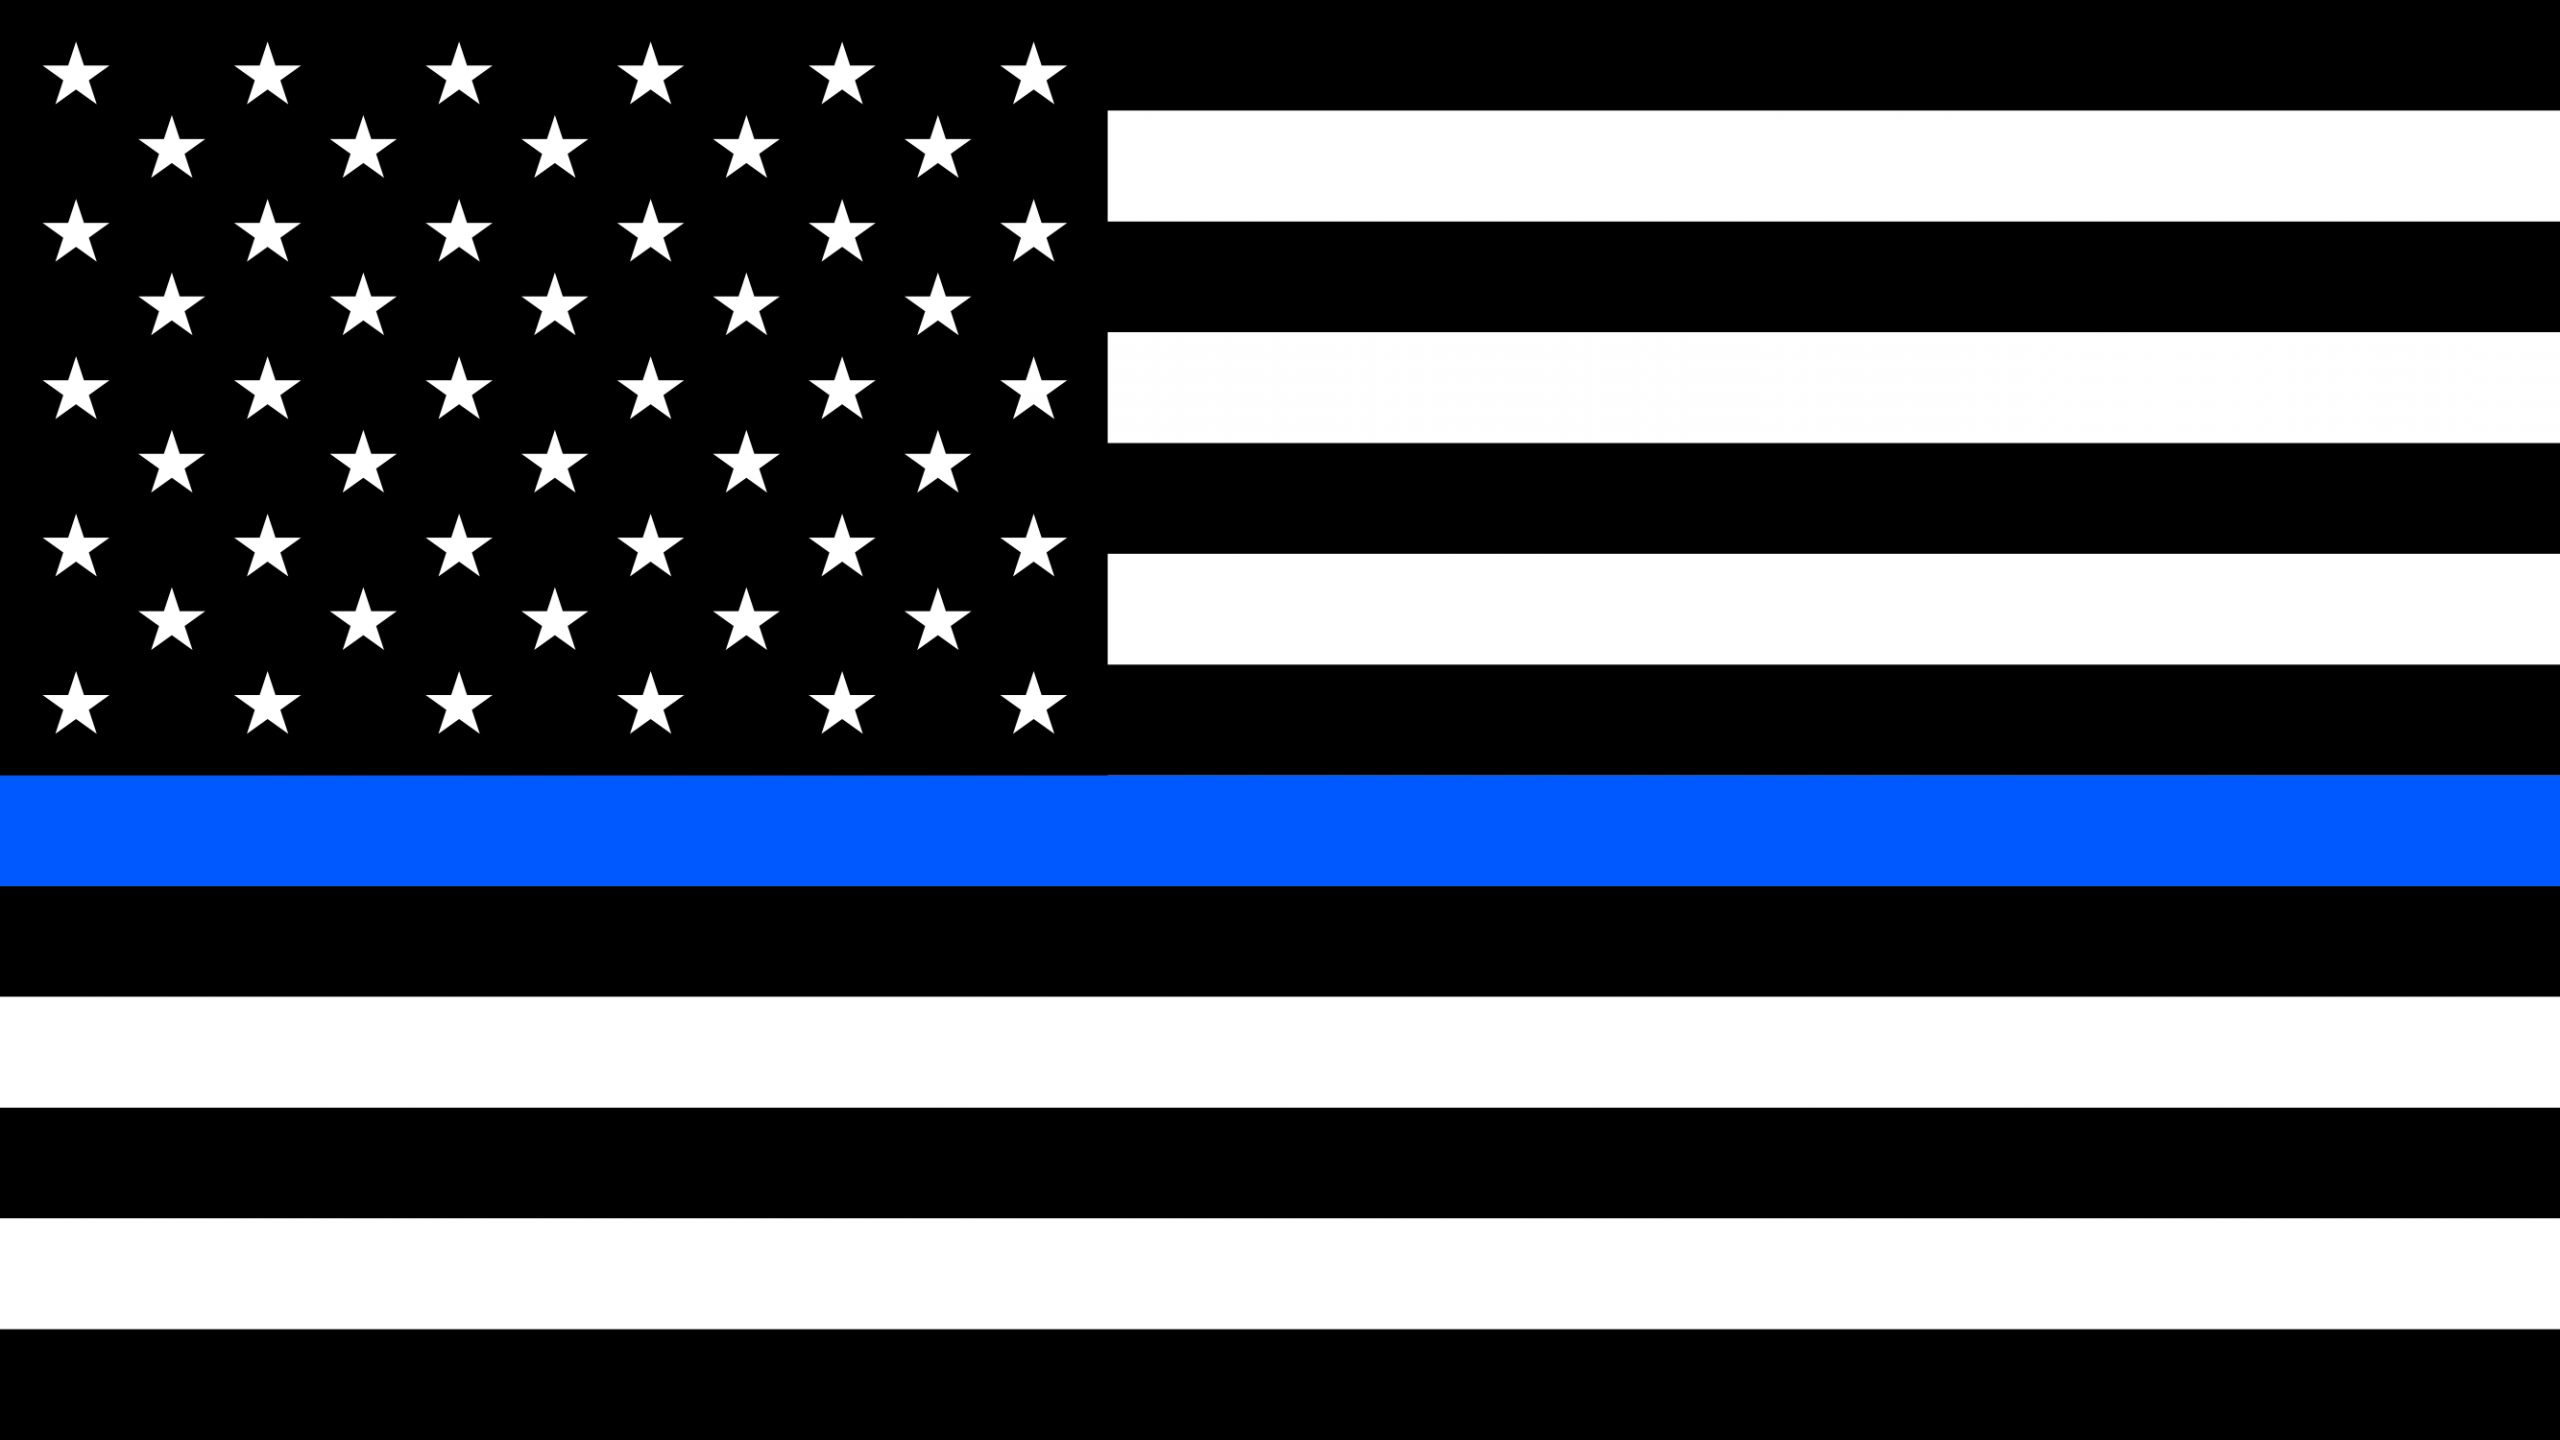 Wide Views of Thin Blue Line | The Highlands Current